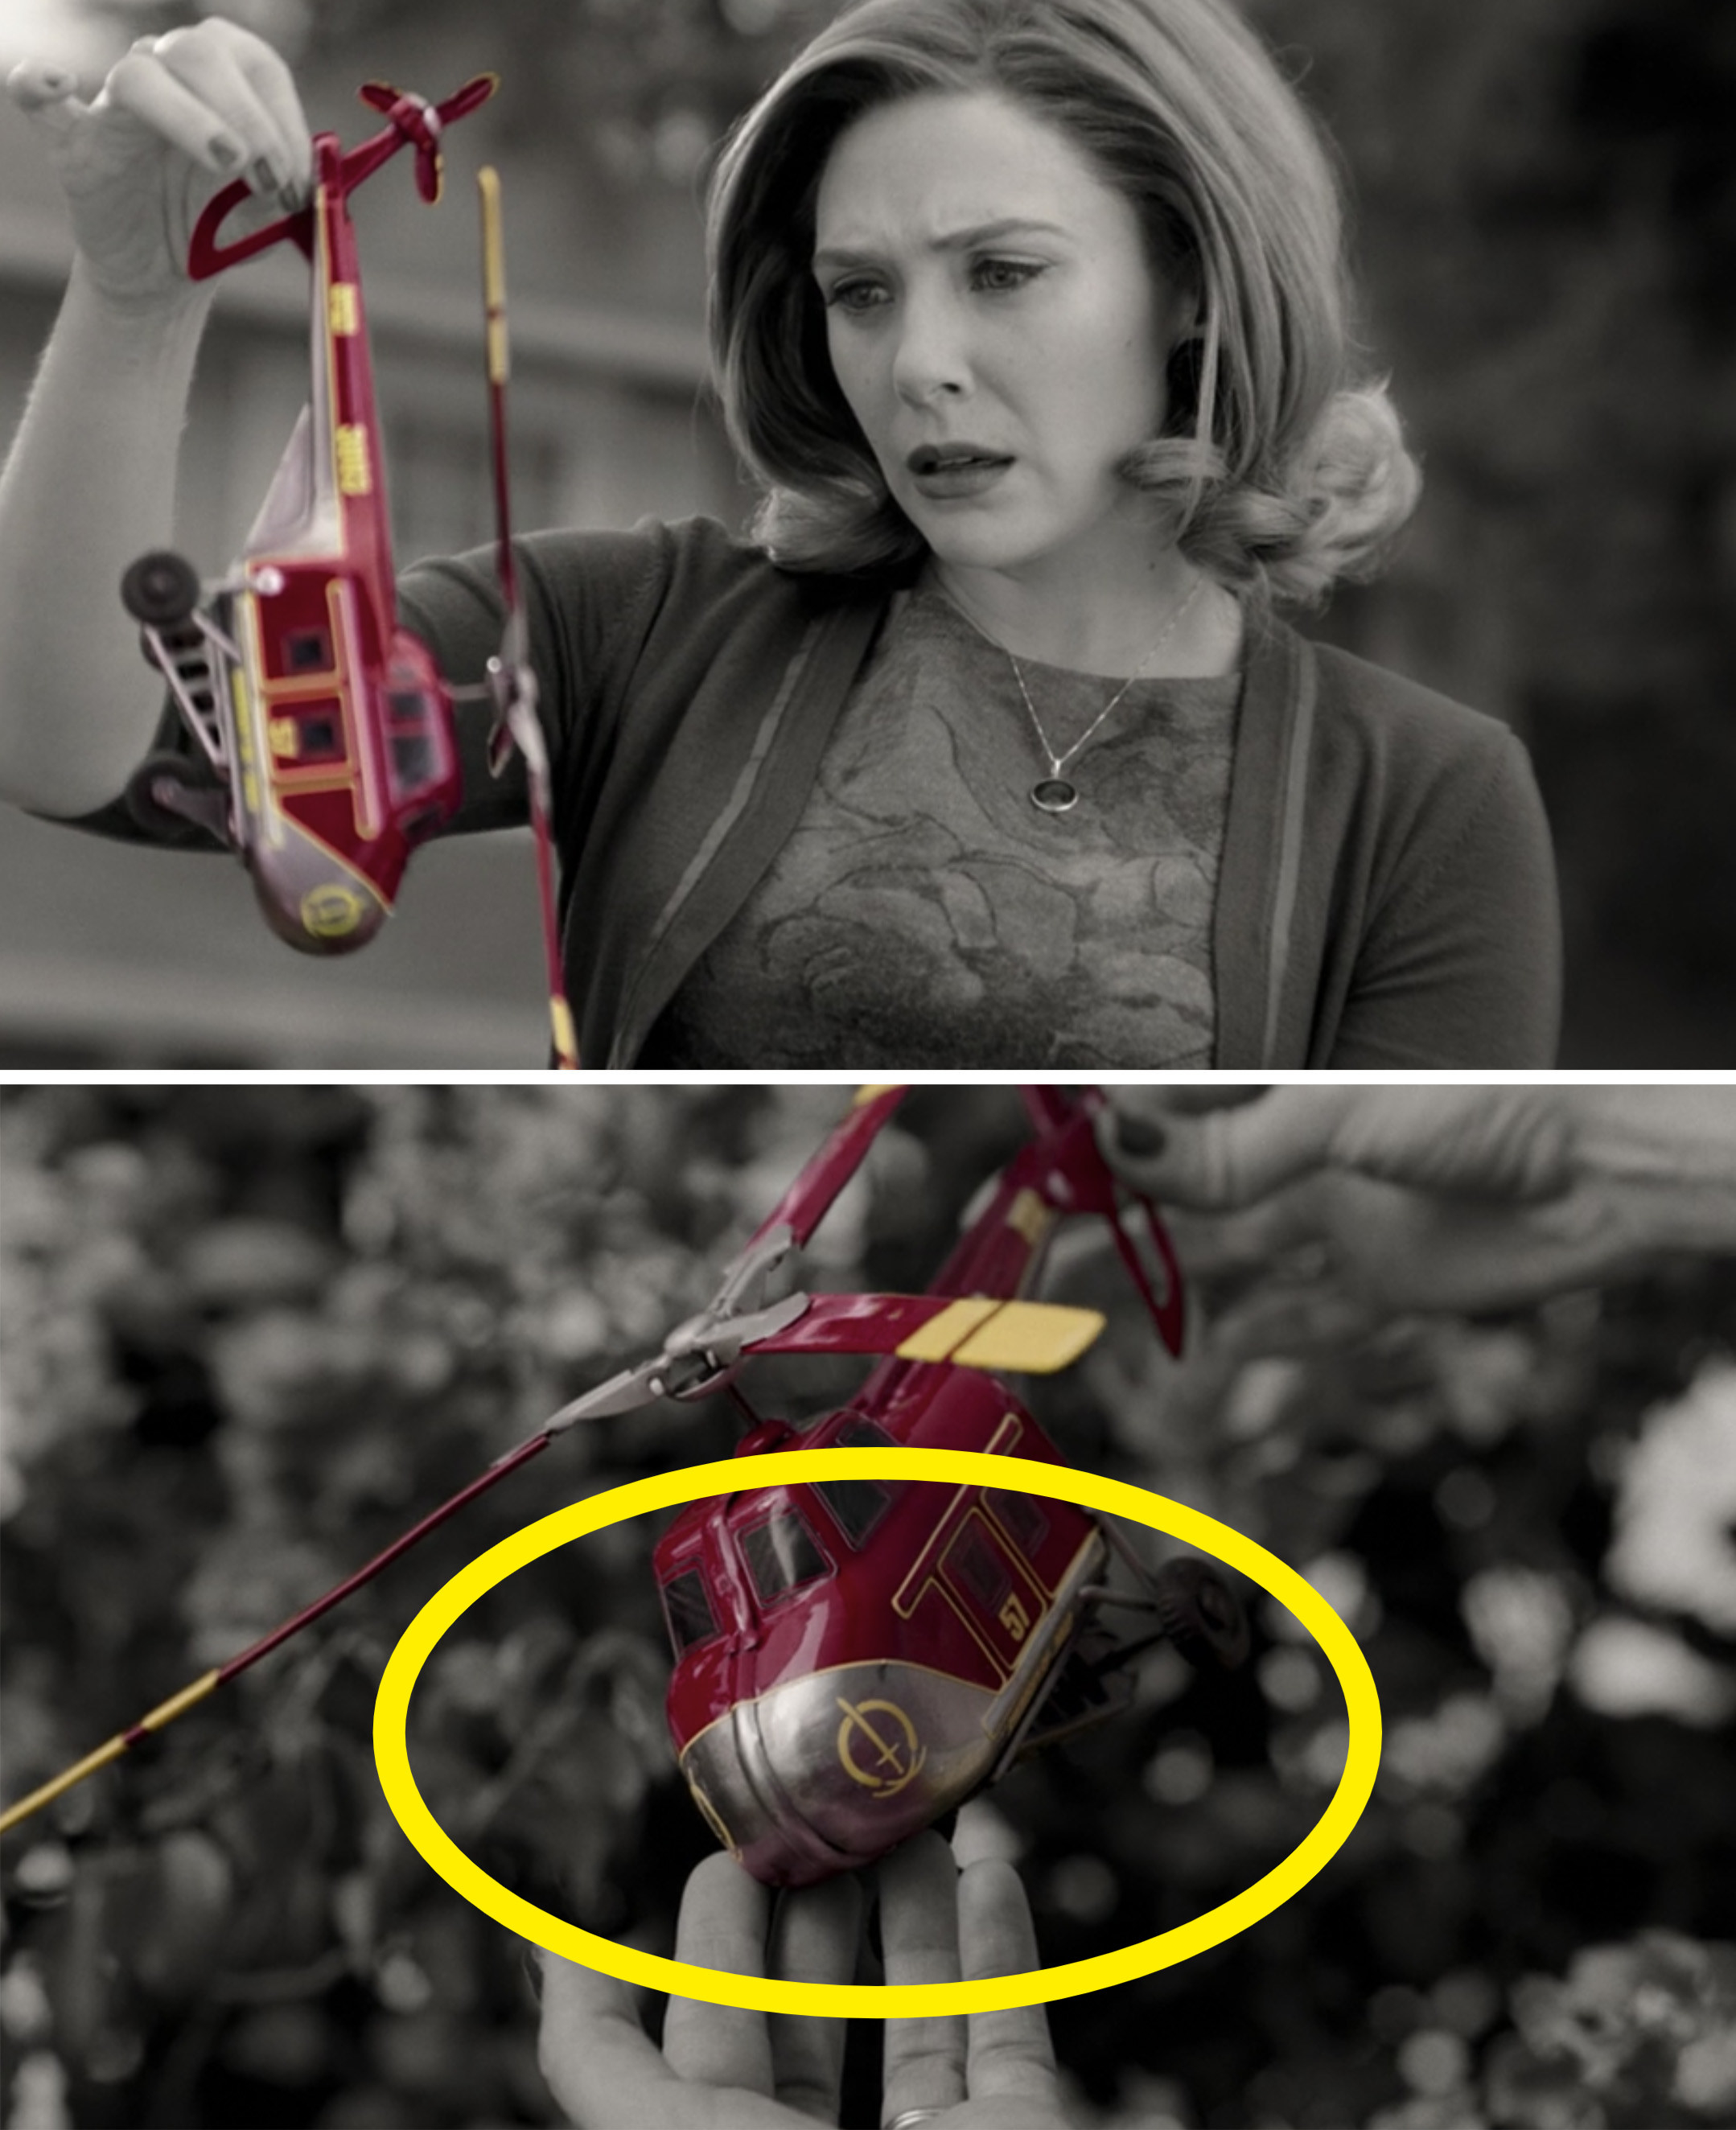 Wanda holding up a red helicopter and seeing the yellow S.W.O.R.D. logo